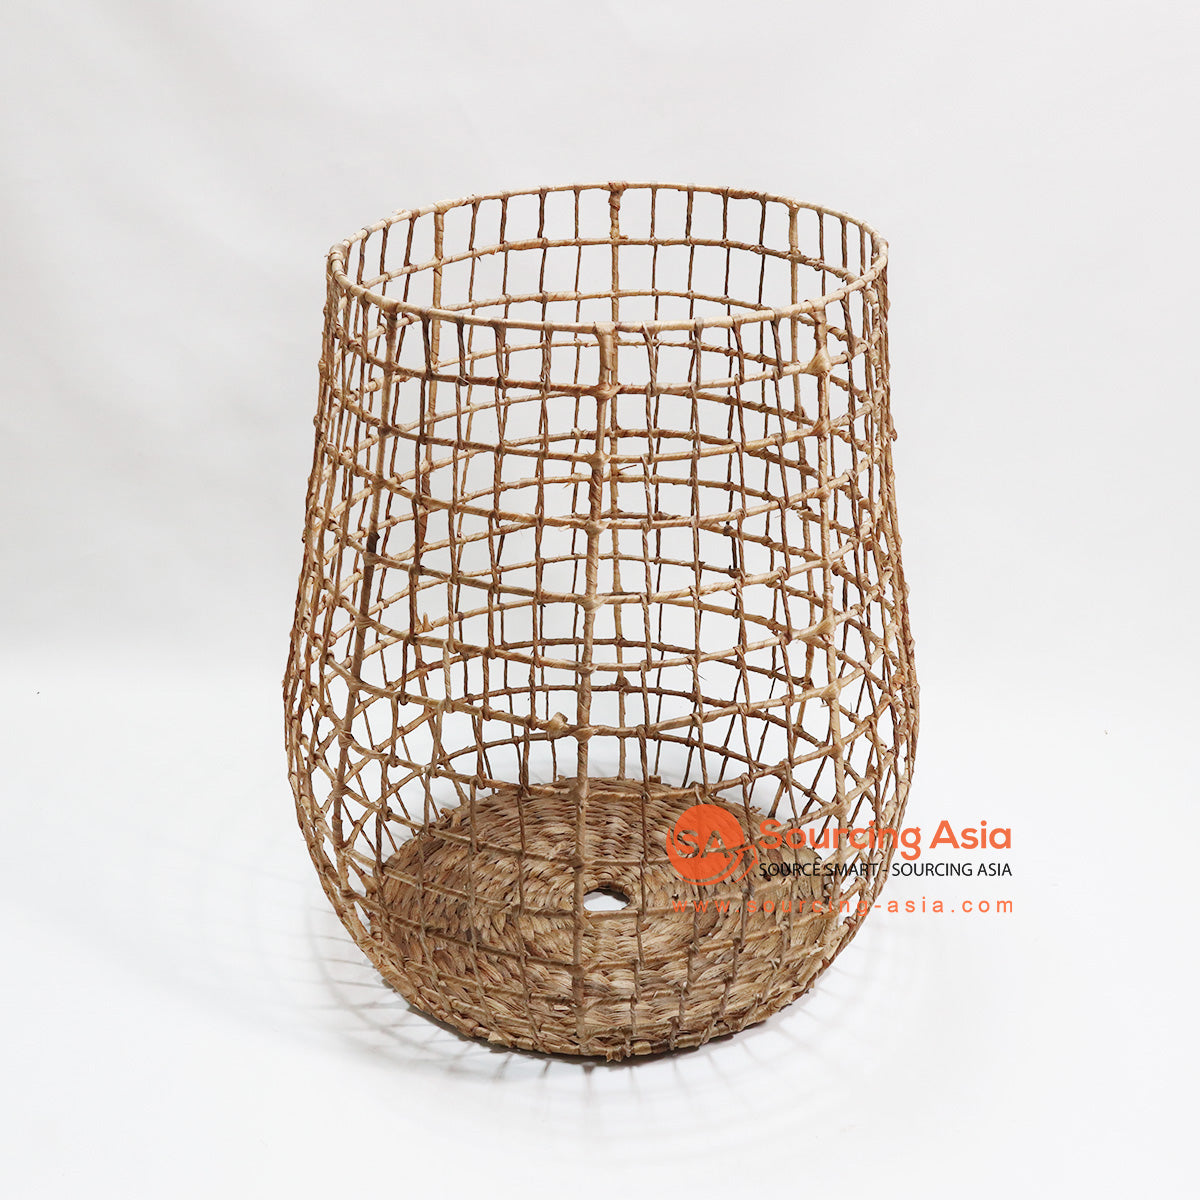 HBSC064 WATER HYACINTH WASTE PAPER BASKET